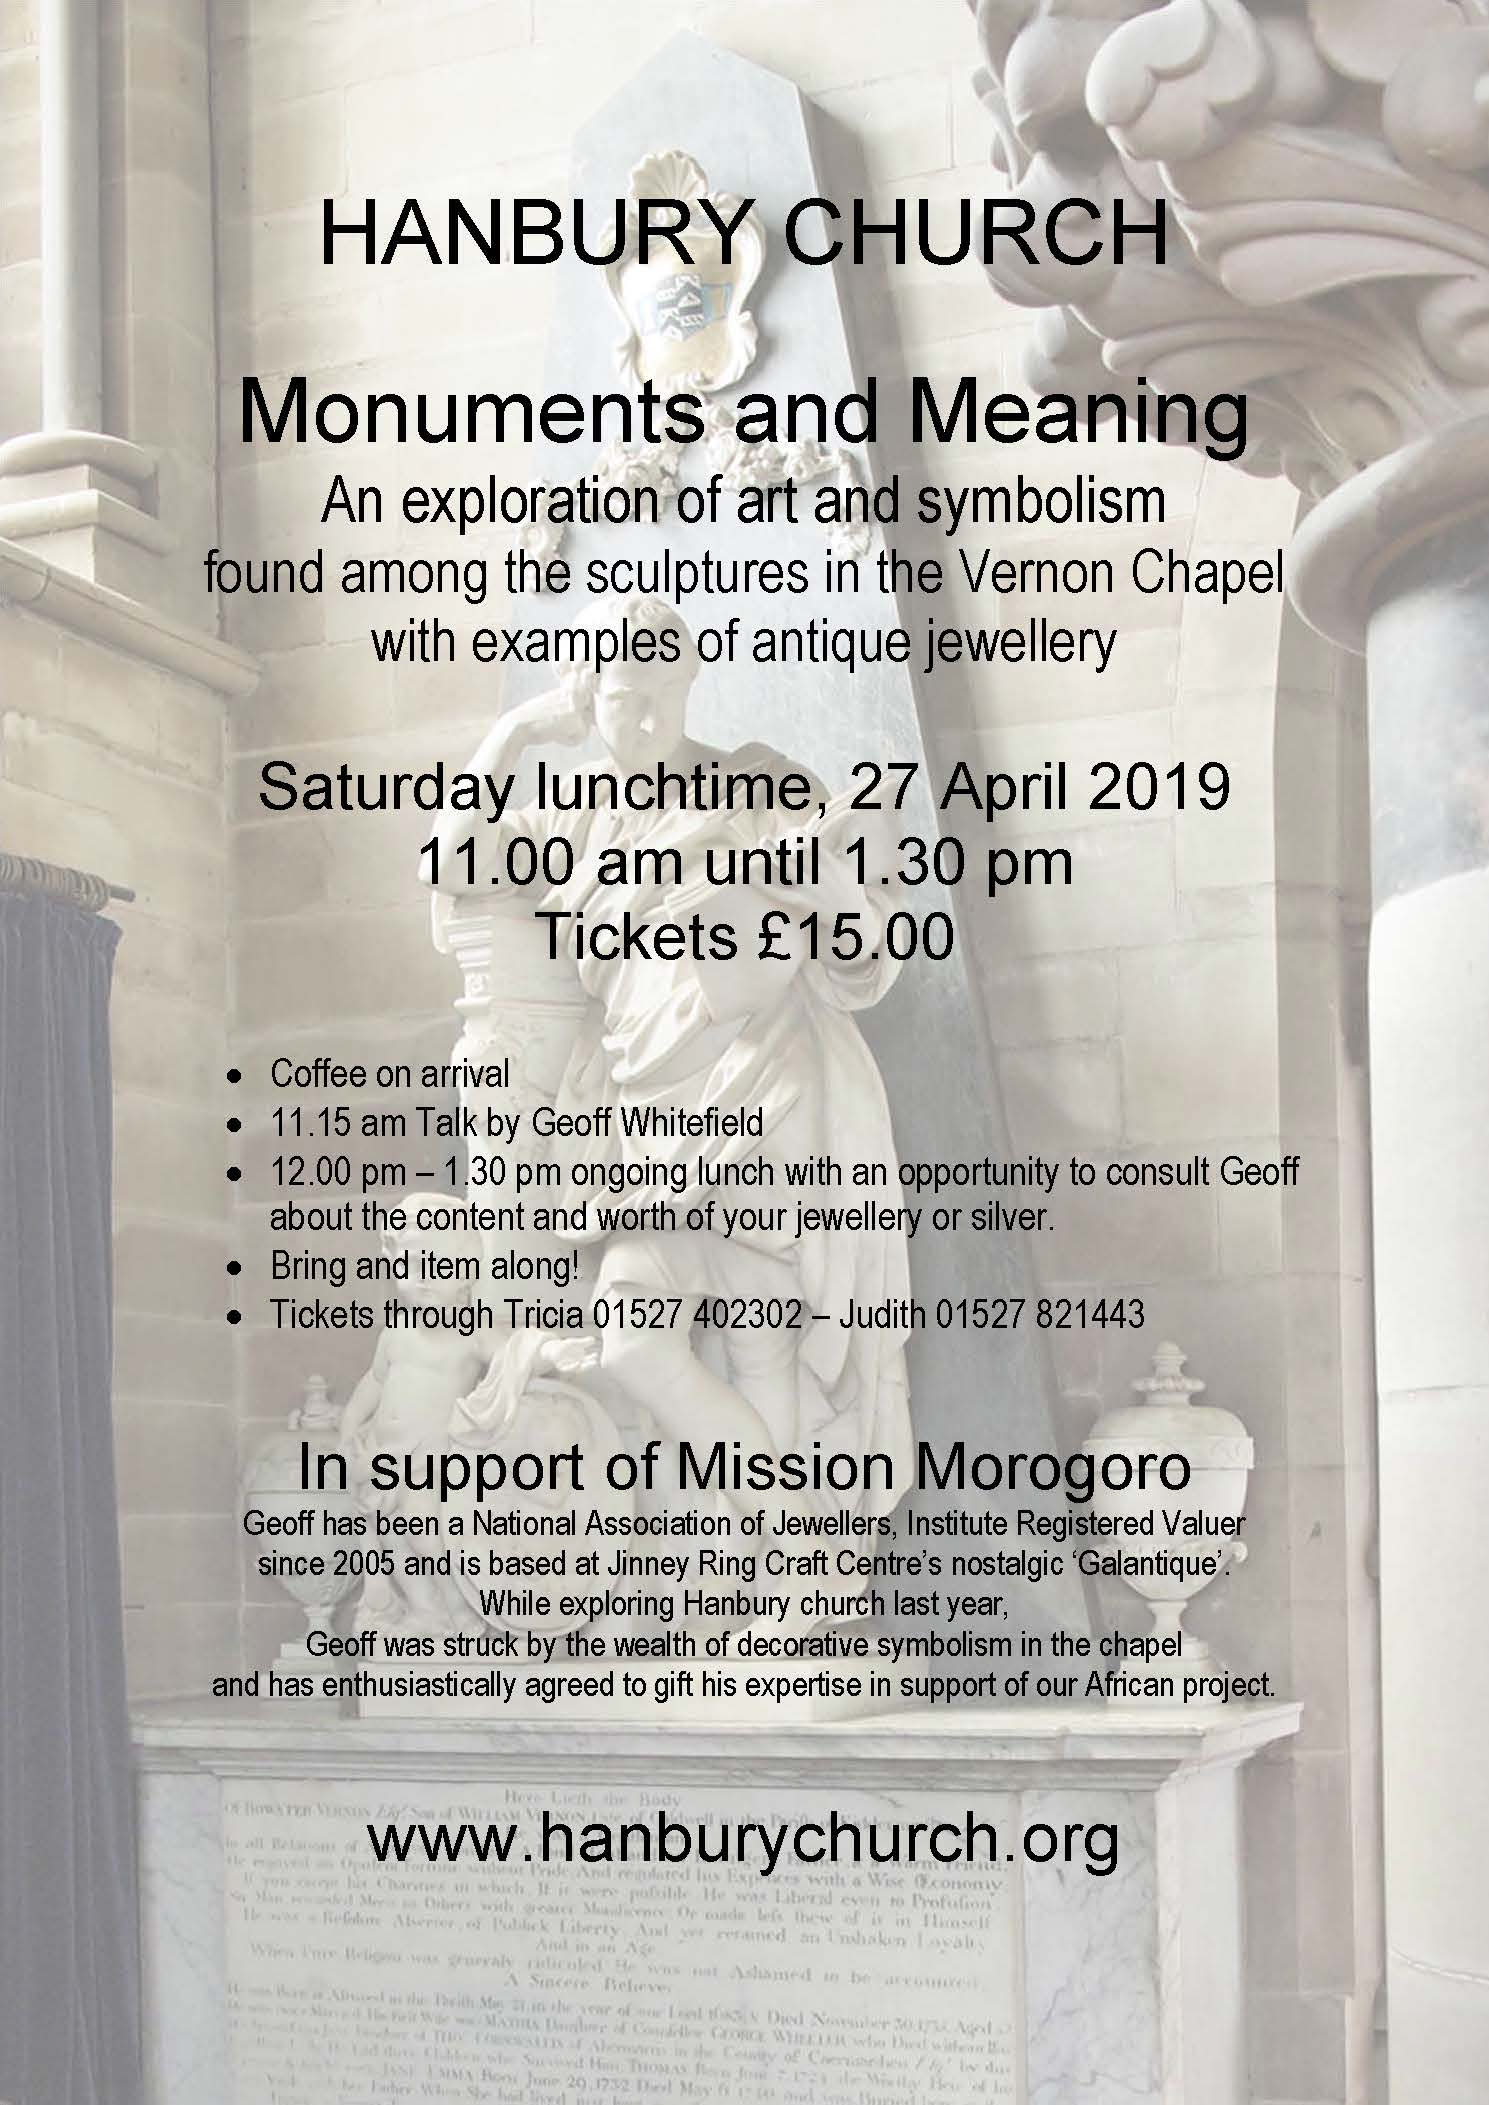 Monuments and Meaning